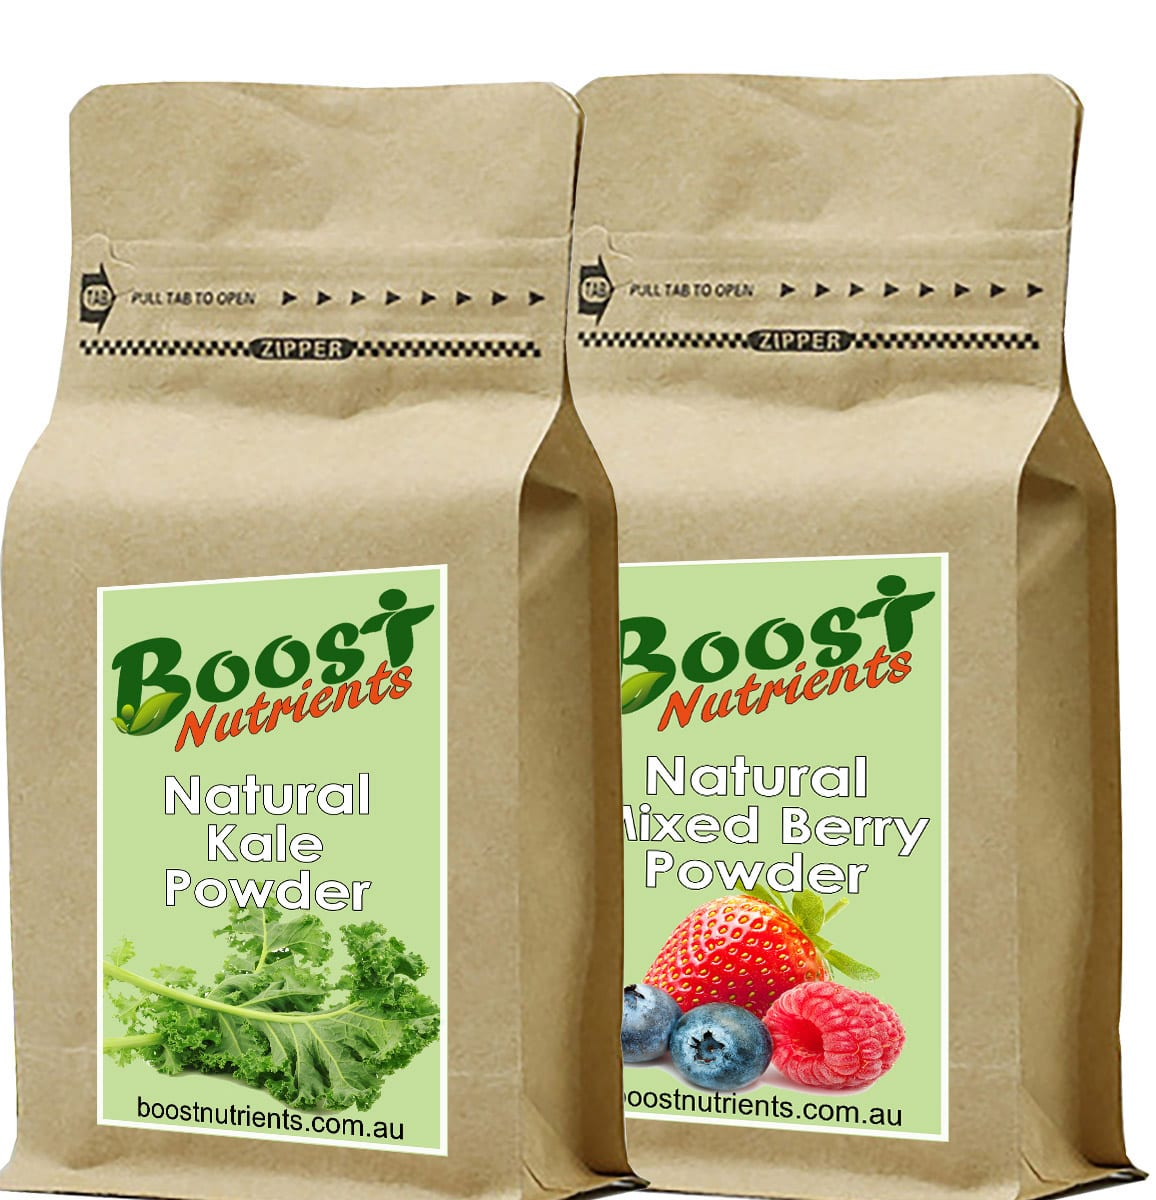 Boost Nutrients Fruit and vegetable powders - Acai Bowl Toppings and Smoothie ingredients